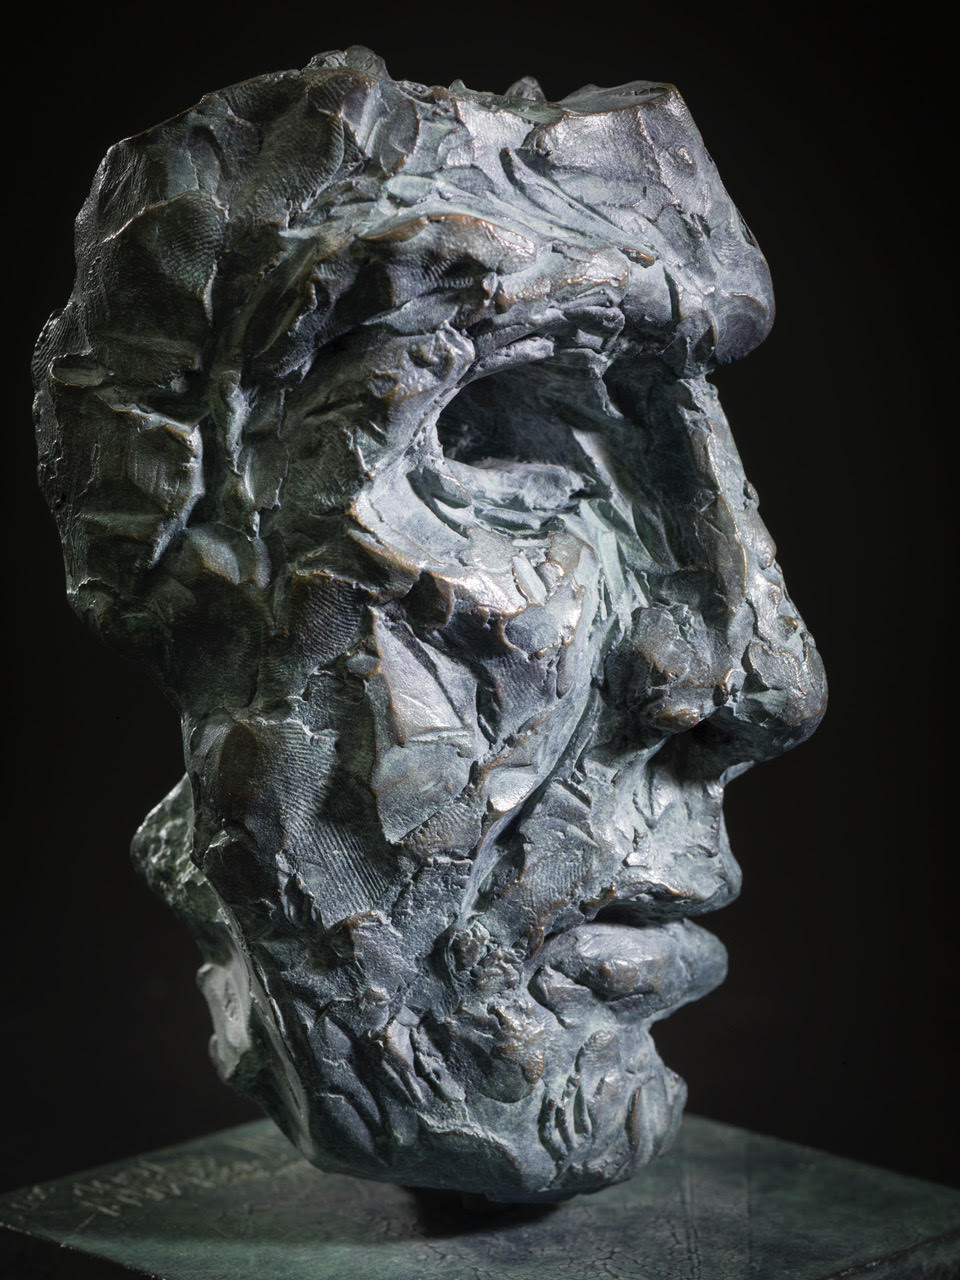 Fragment LIII - Bronze SculptureEdition: 1 of 3£2,700.00